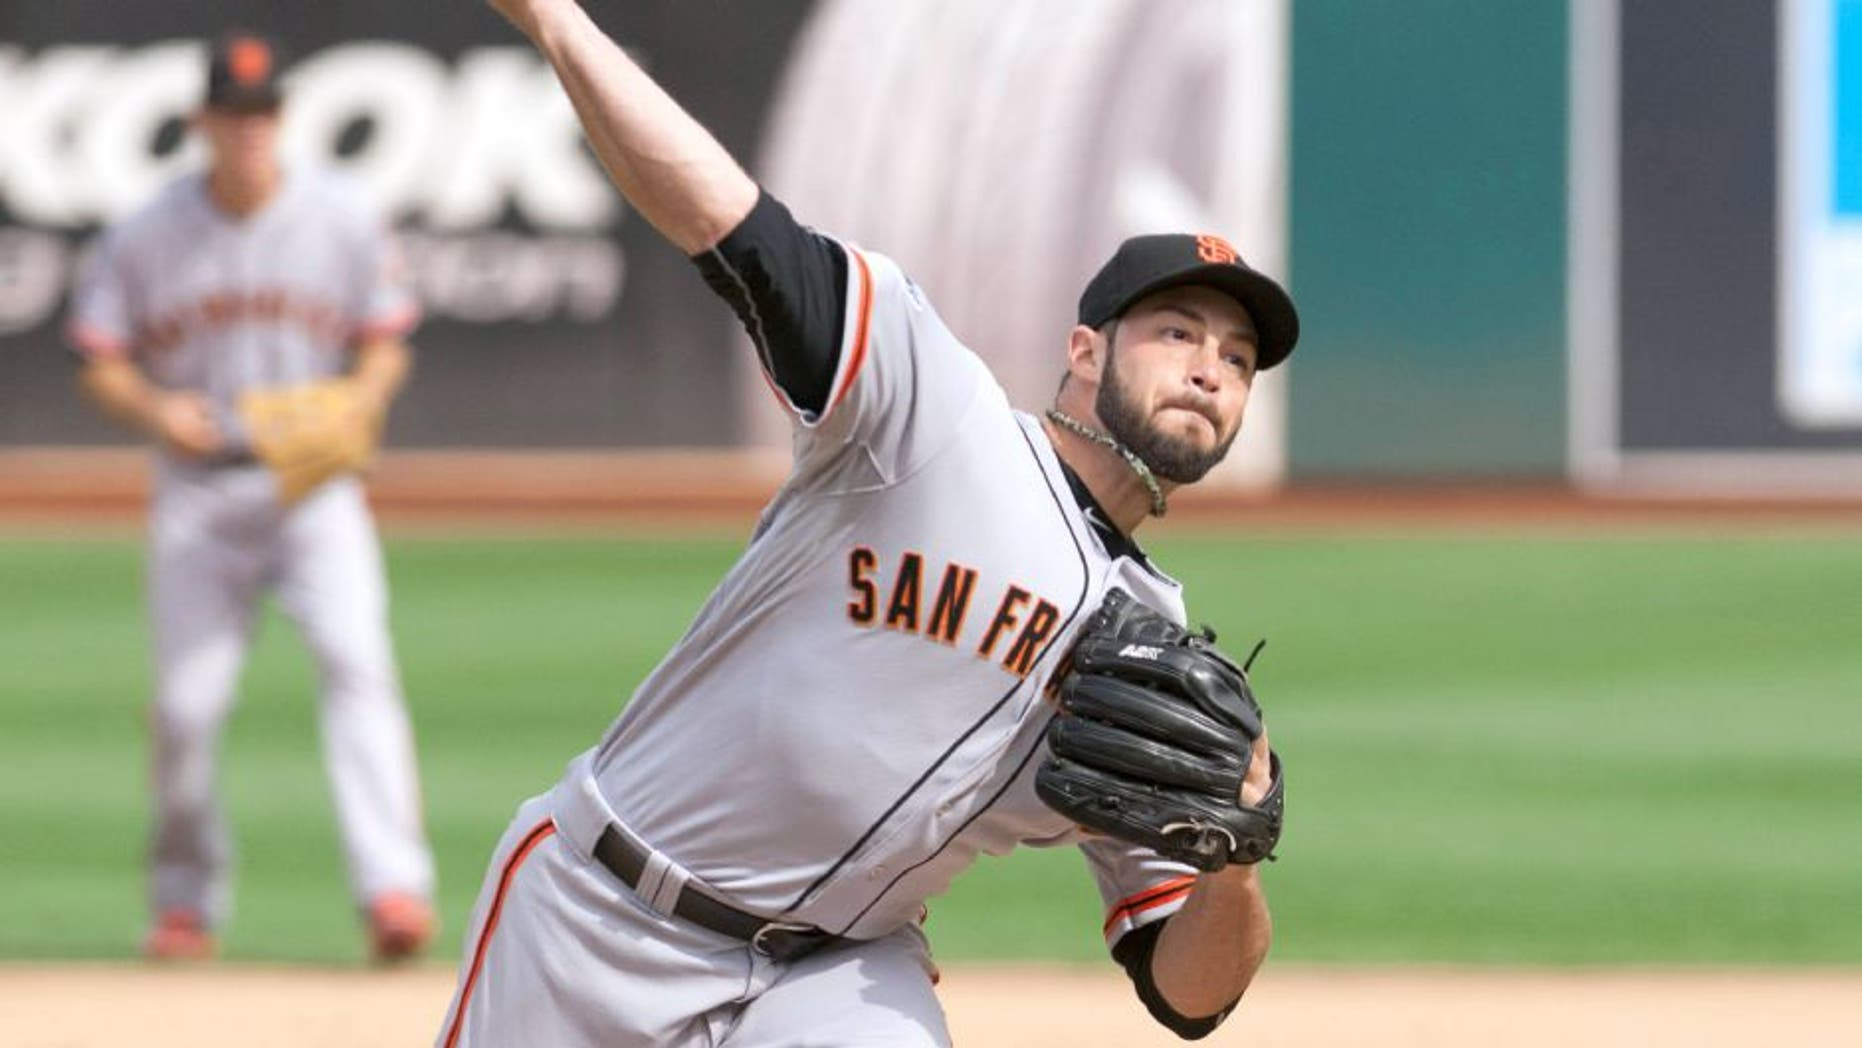 Sep 27, 2015; Oakland, CA, USA; San Francisco Giants relief pitcher George Kontos (70) throws a pitch against the Oakland Athletics during the sixth inning at O.co Coliseum. The San Francisco Giants defeated the Oakland Athletics 5-4. Mandatory Credit: Ed Szczepanski-USA TODAY Sports